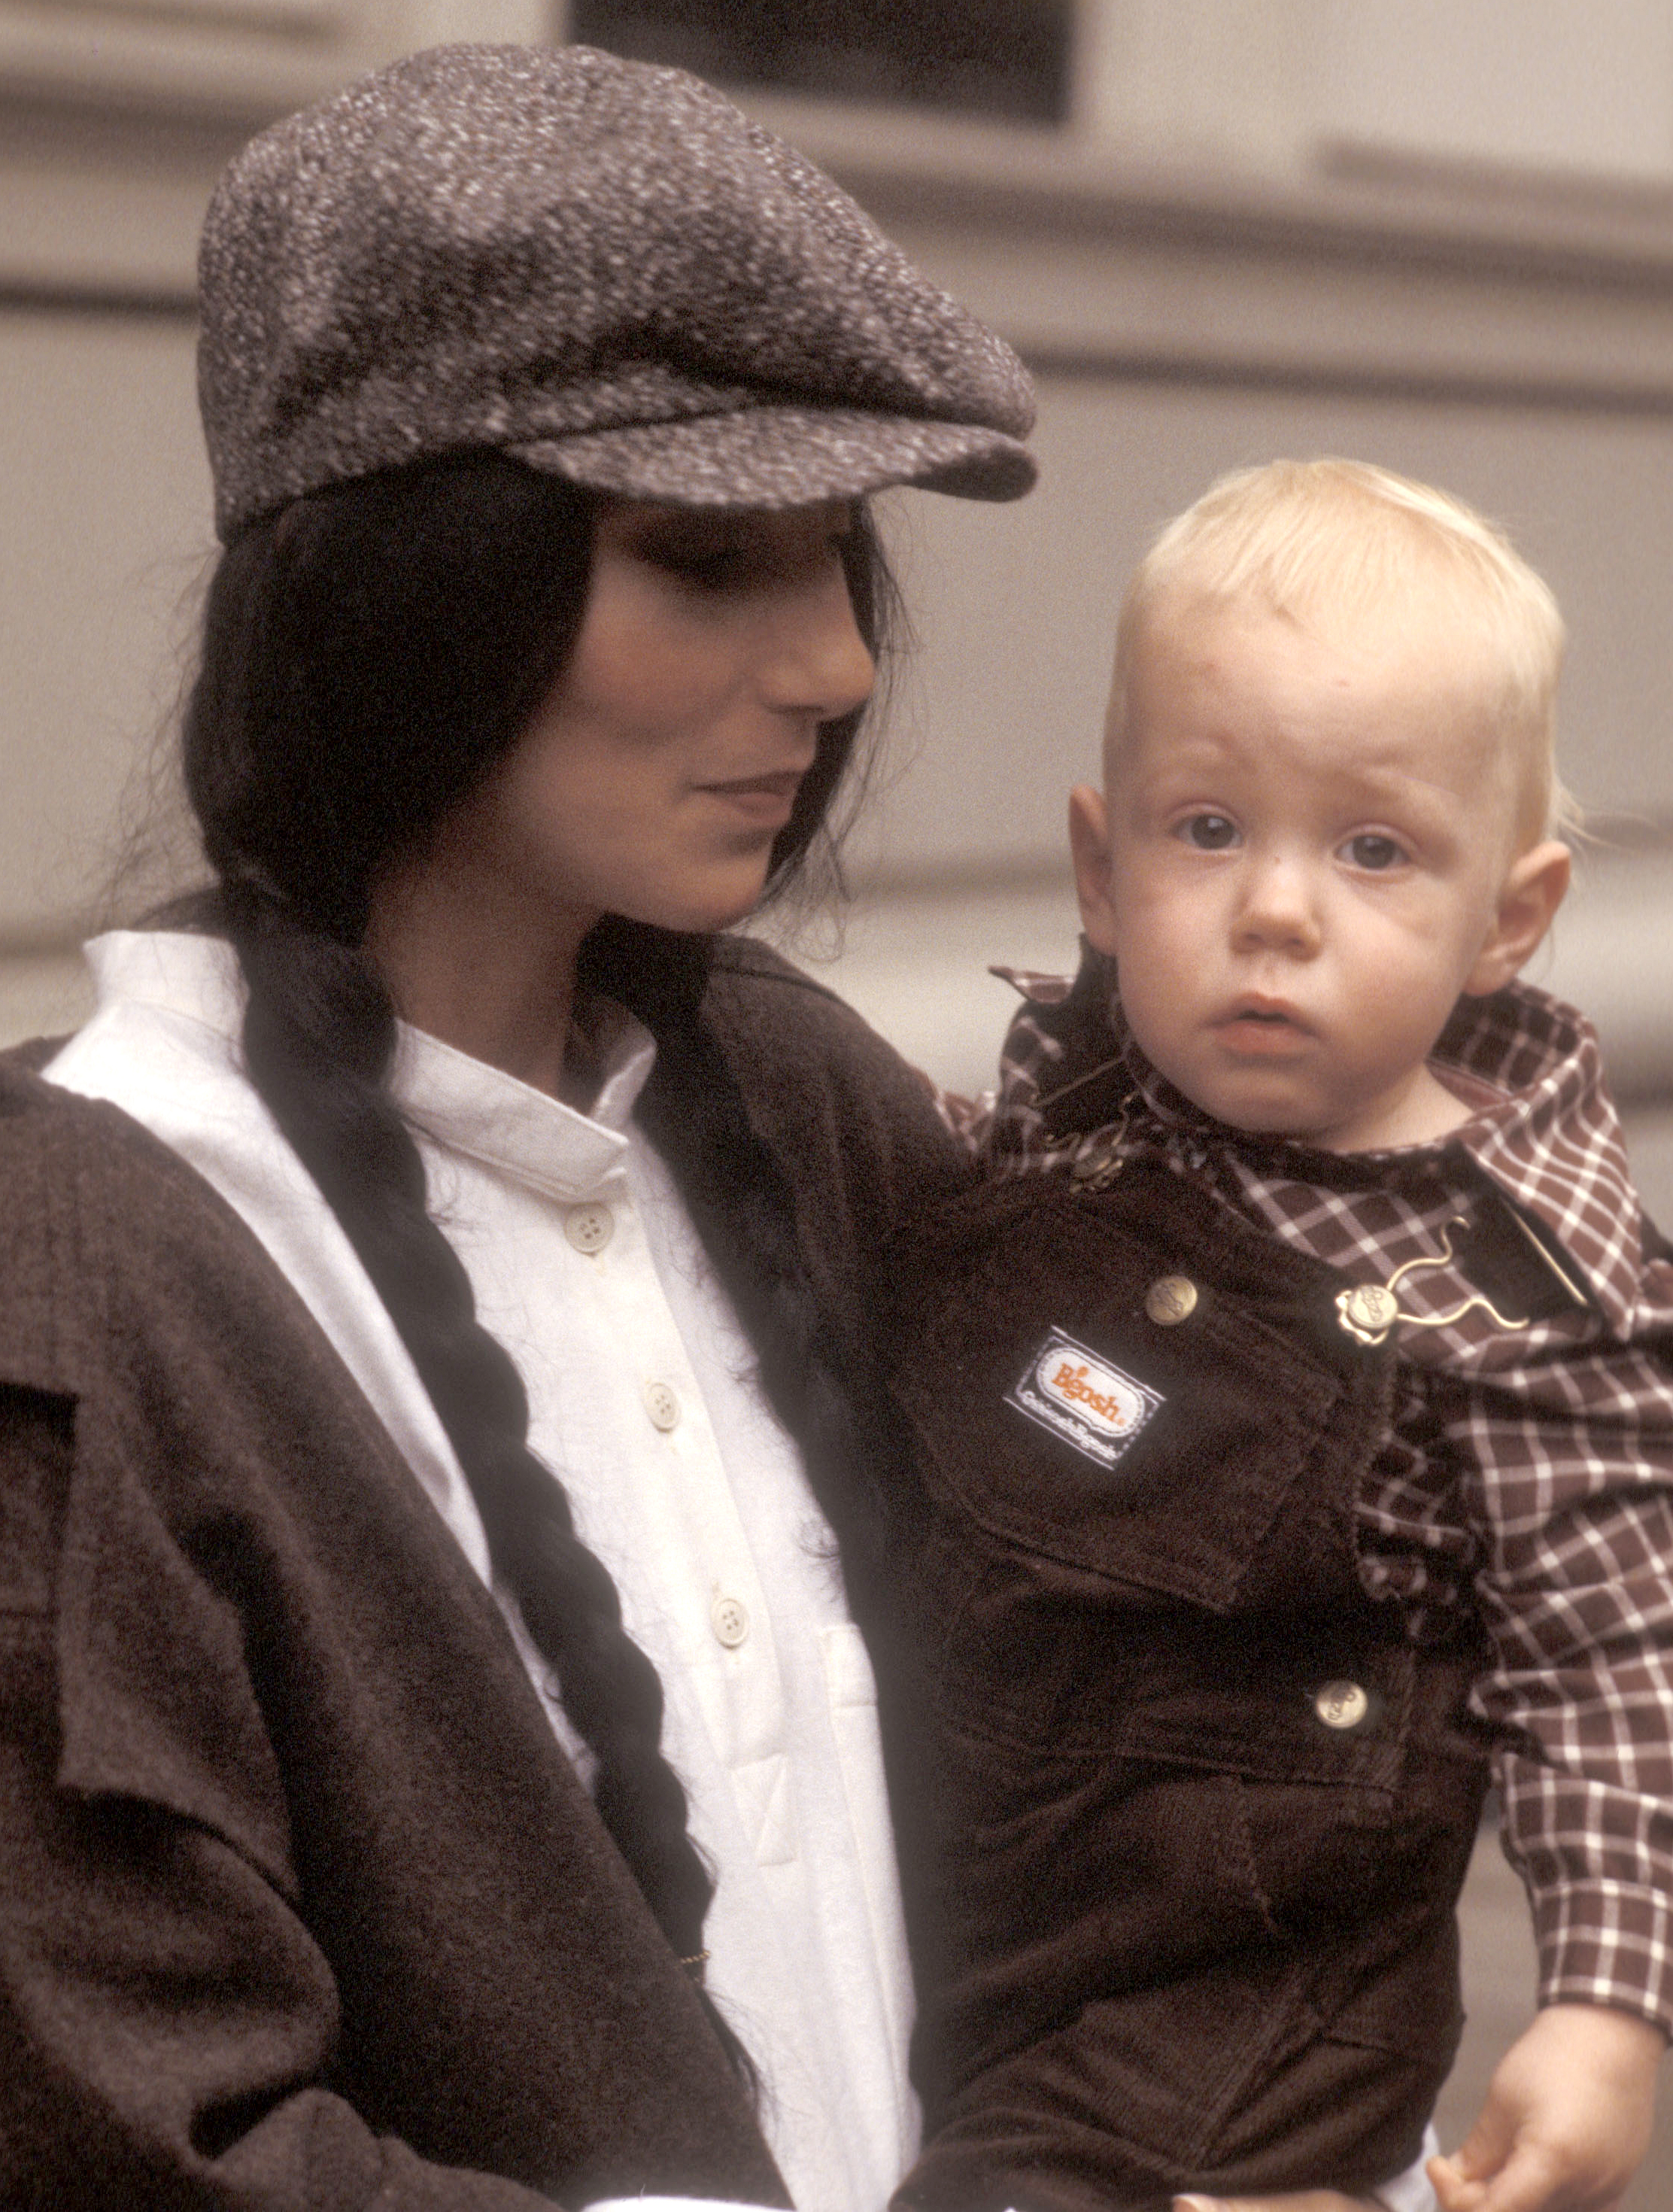 Cher Through The Years - Cher and Allman welcomed their son, Elijah Blue Allman , who went on to follow in his parents' footsteps as a musician.